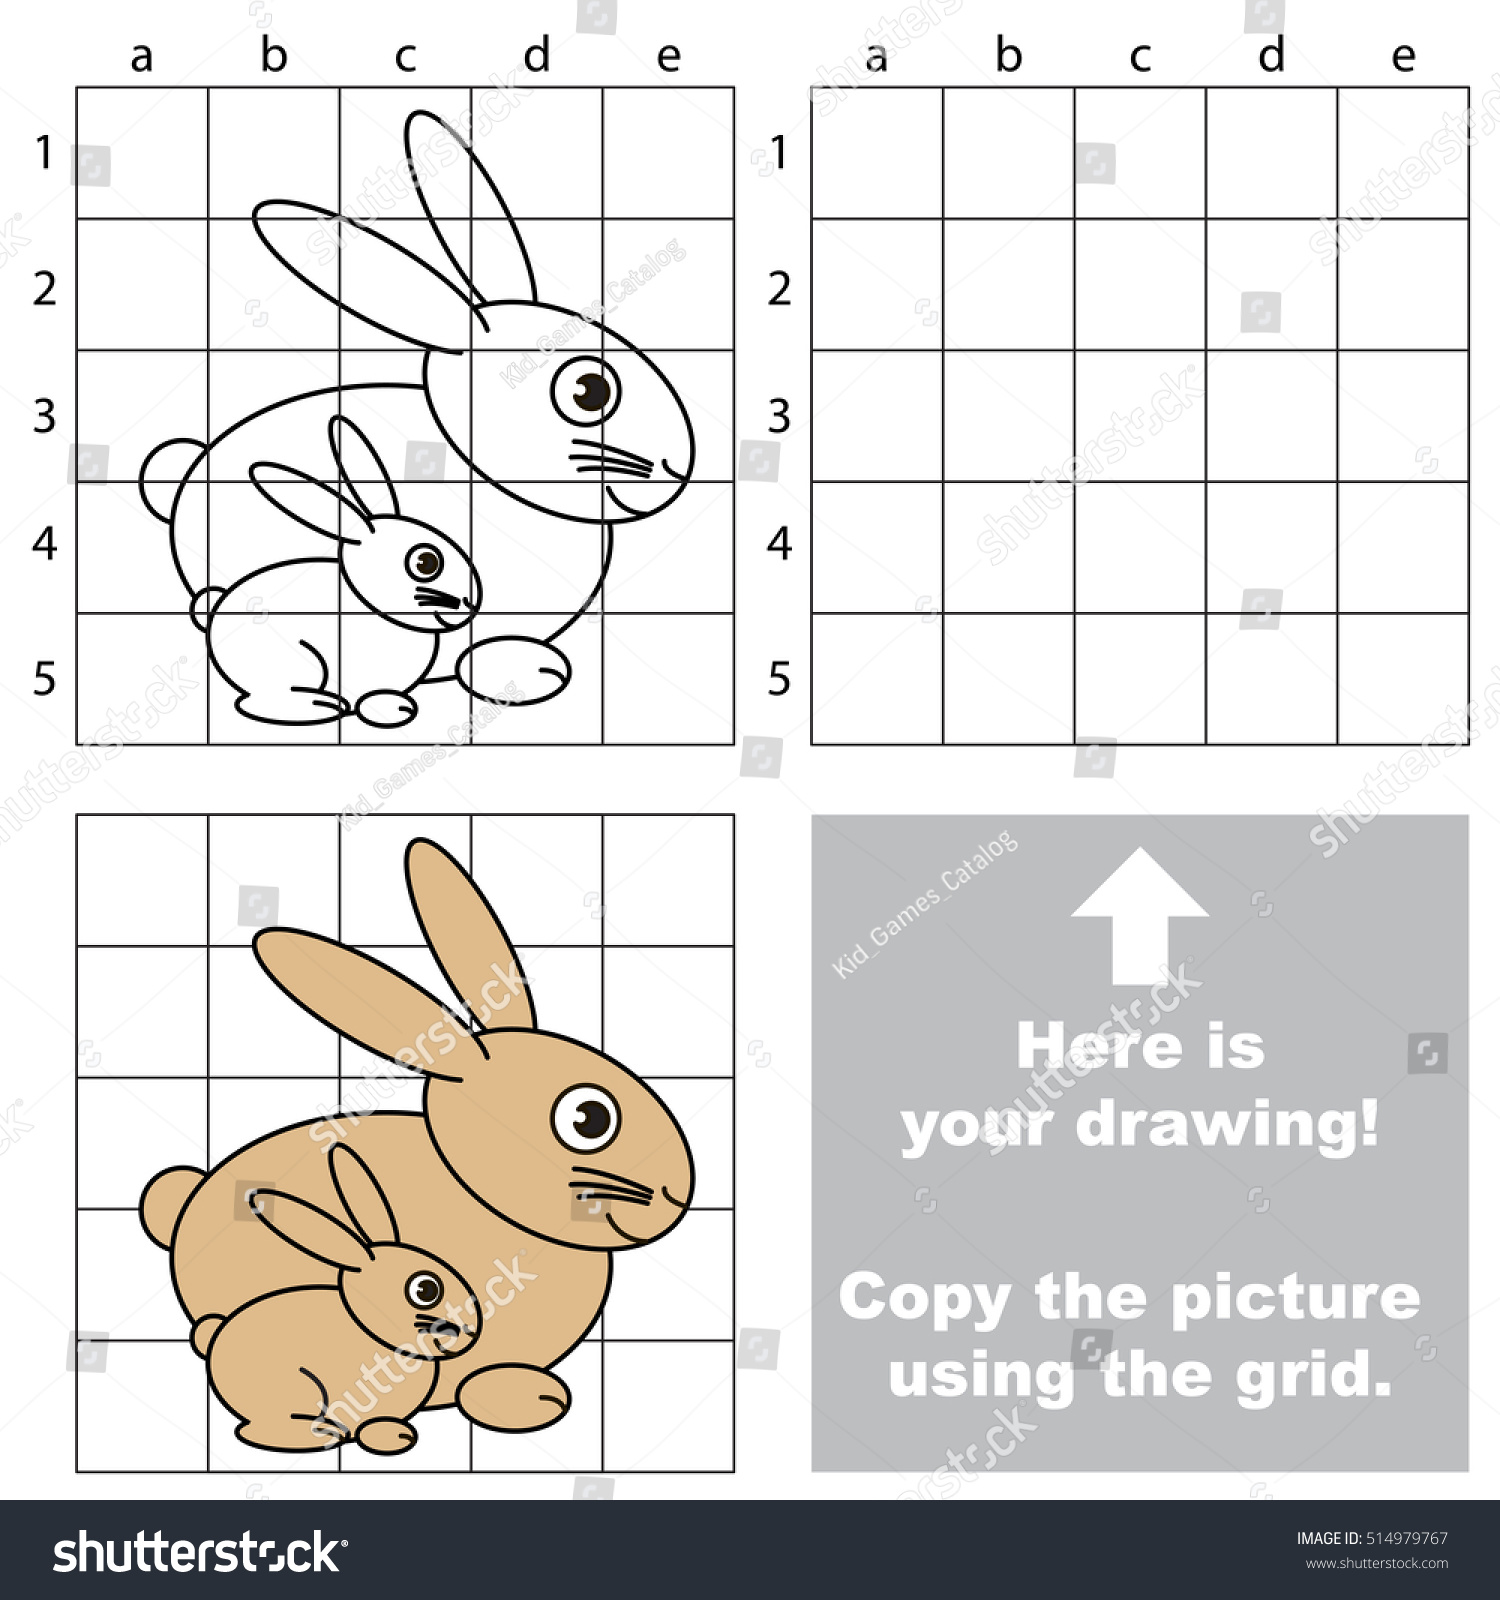 Drawing Using Grid Lines : Copy picture using grid lines kid stock vector